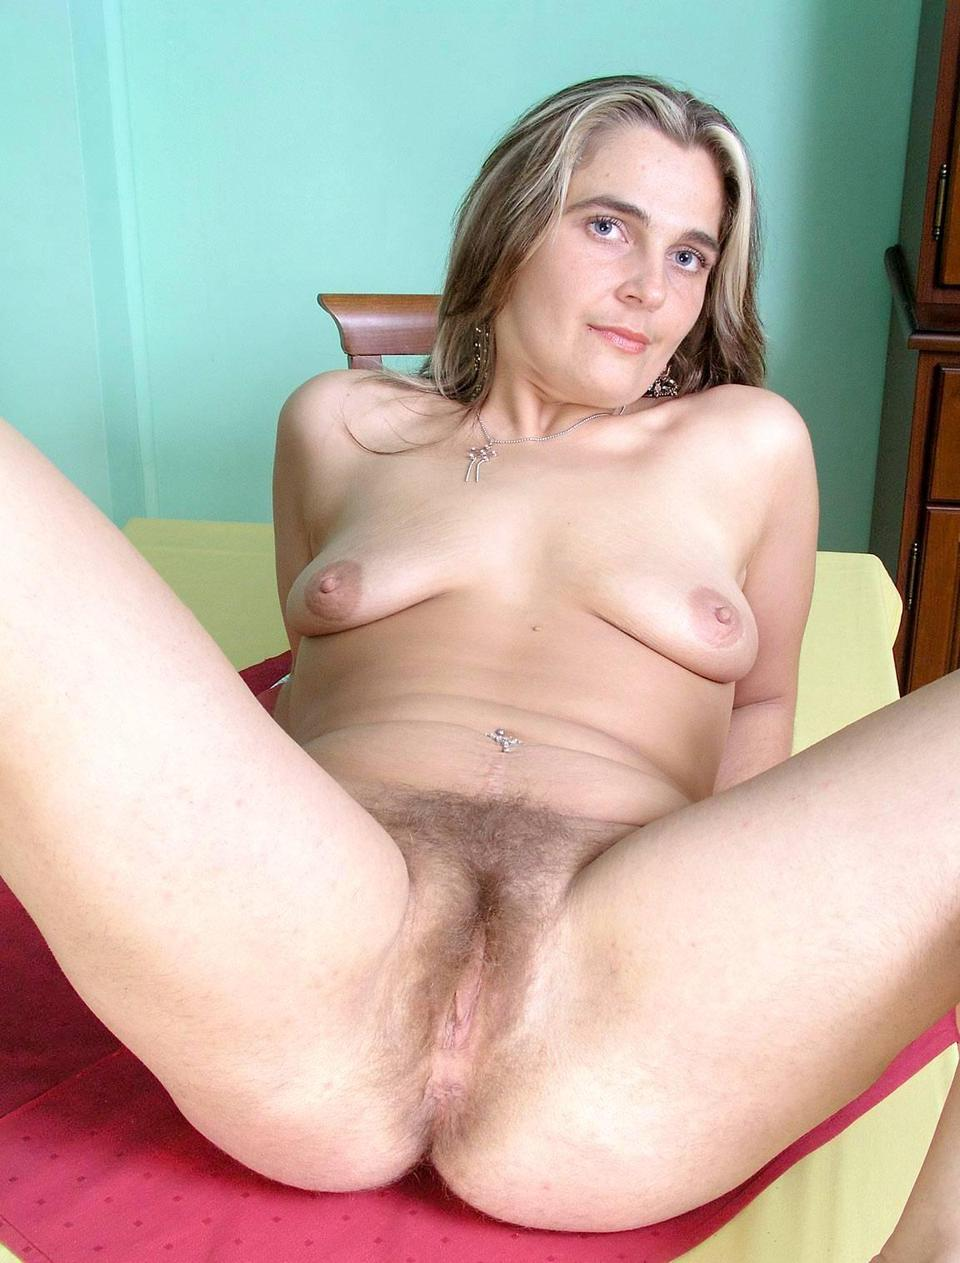 Opinion mom spread hairy pussy for son that would